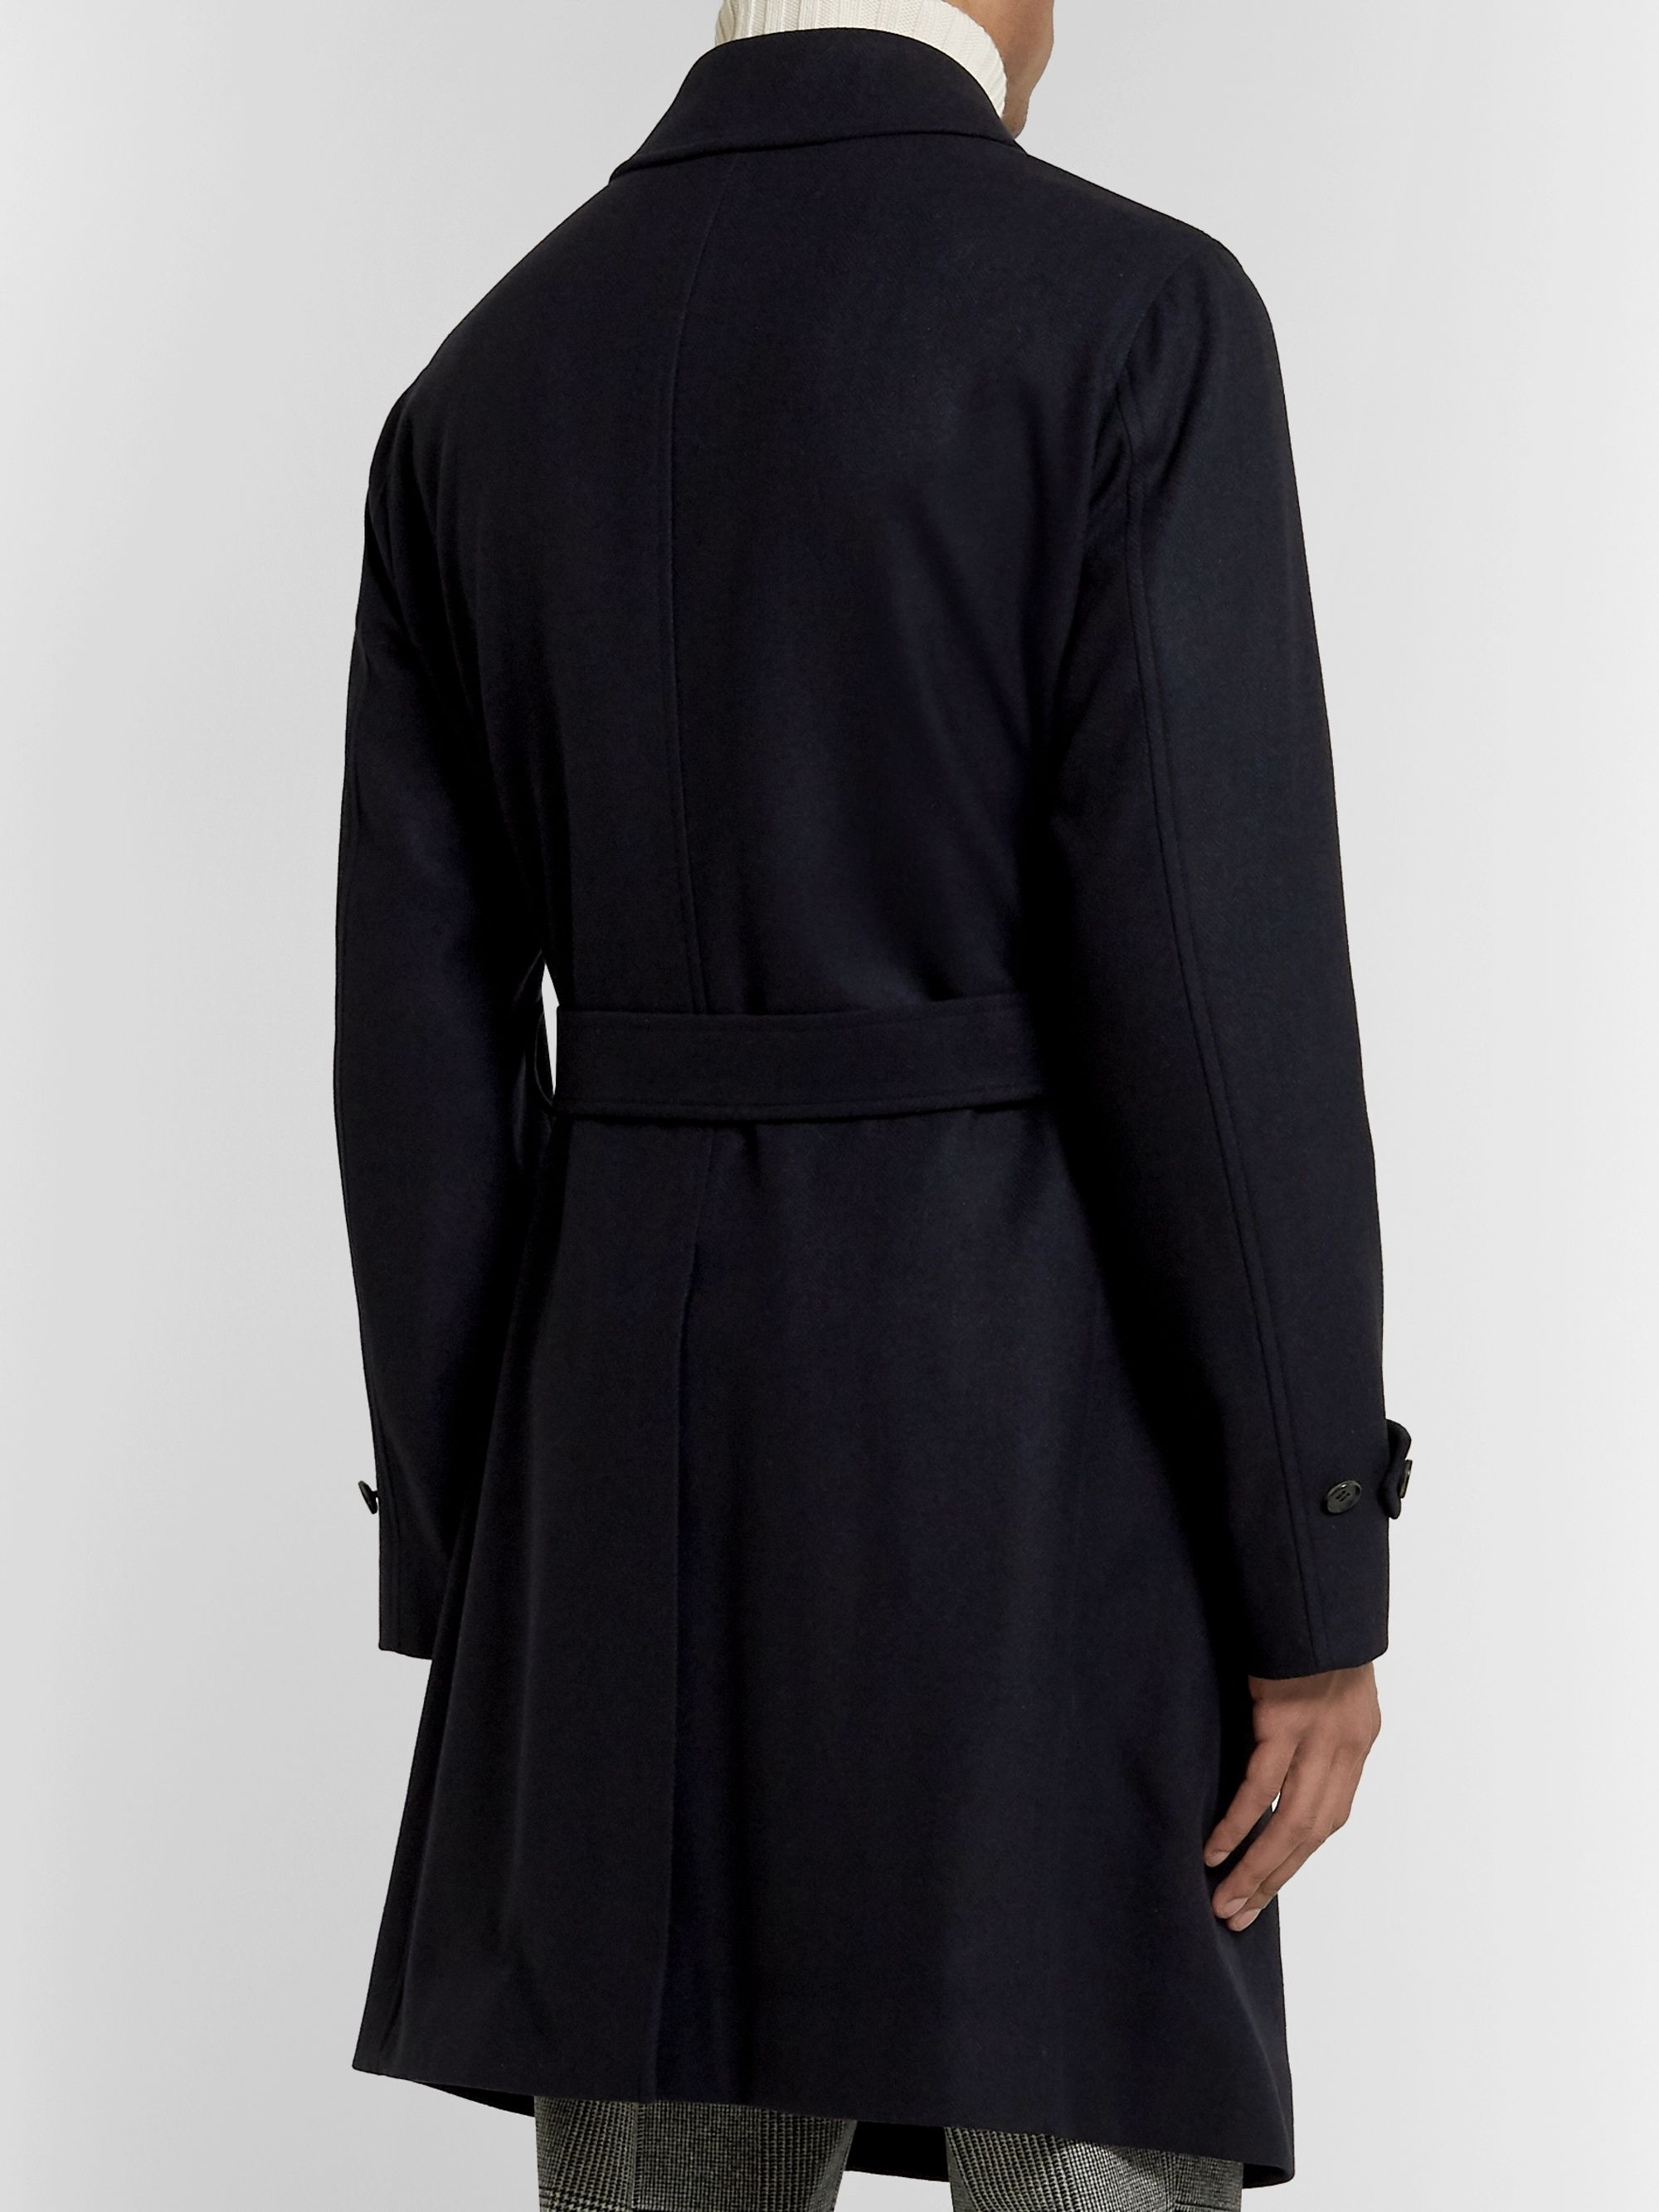 Beams F Double-Breasted Wool and Cashmere-Blend Trench Coat